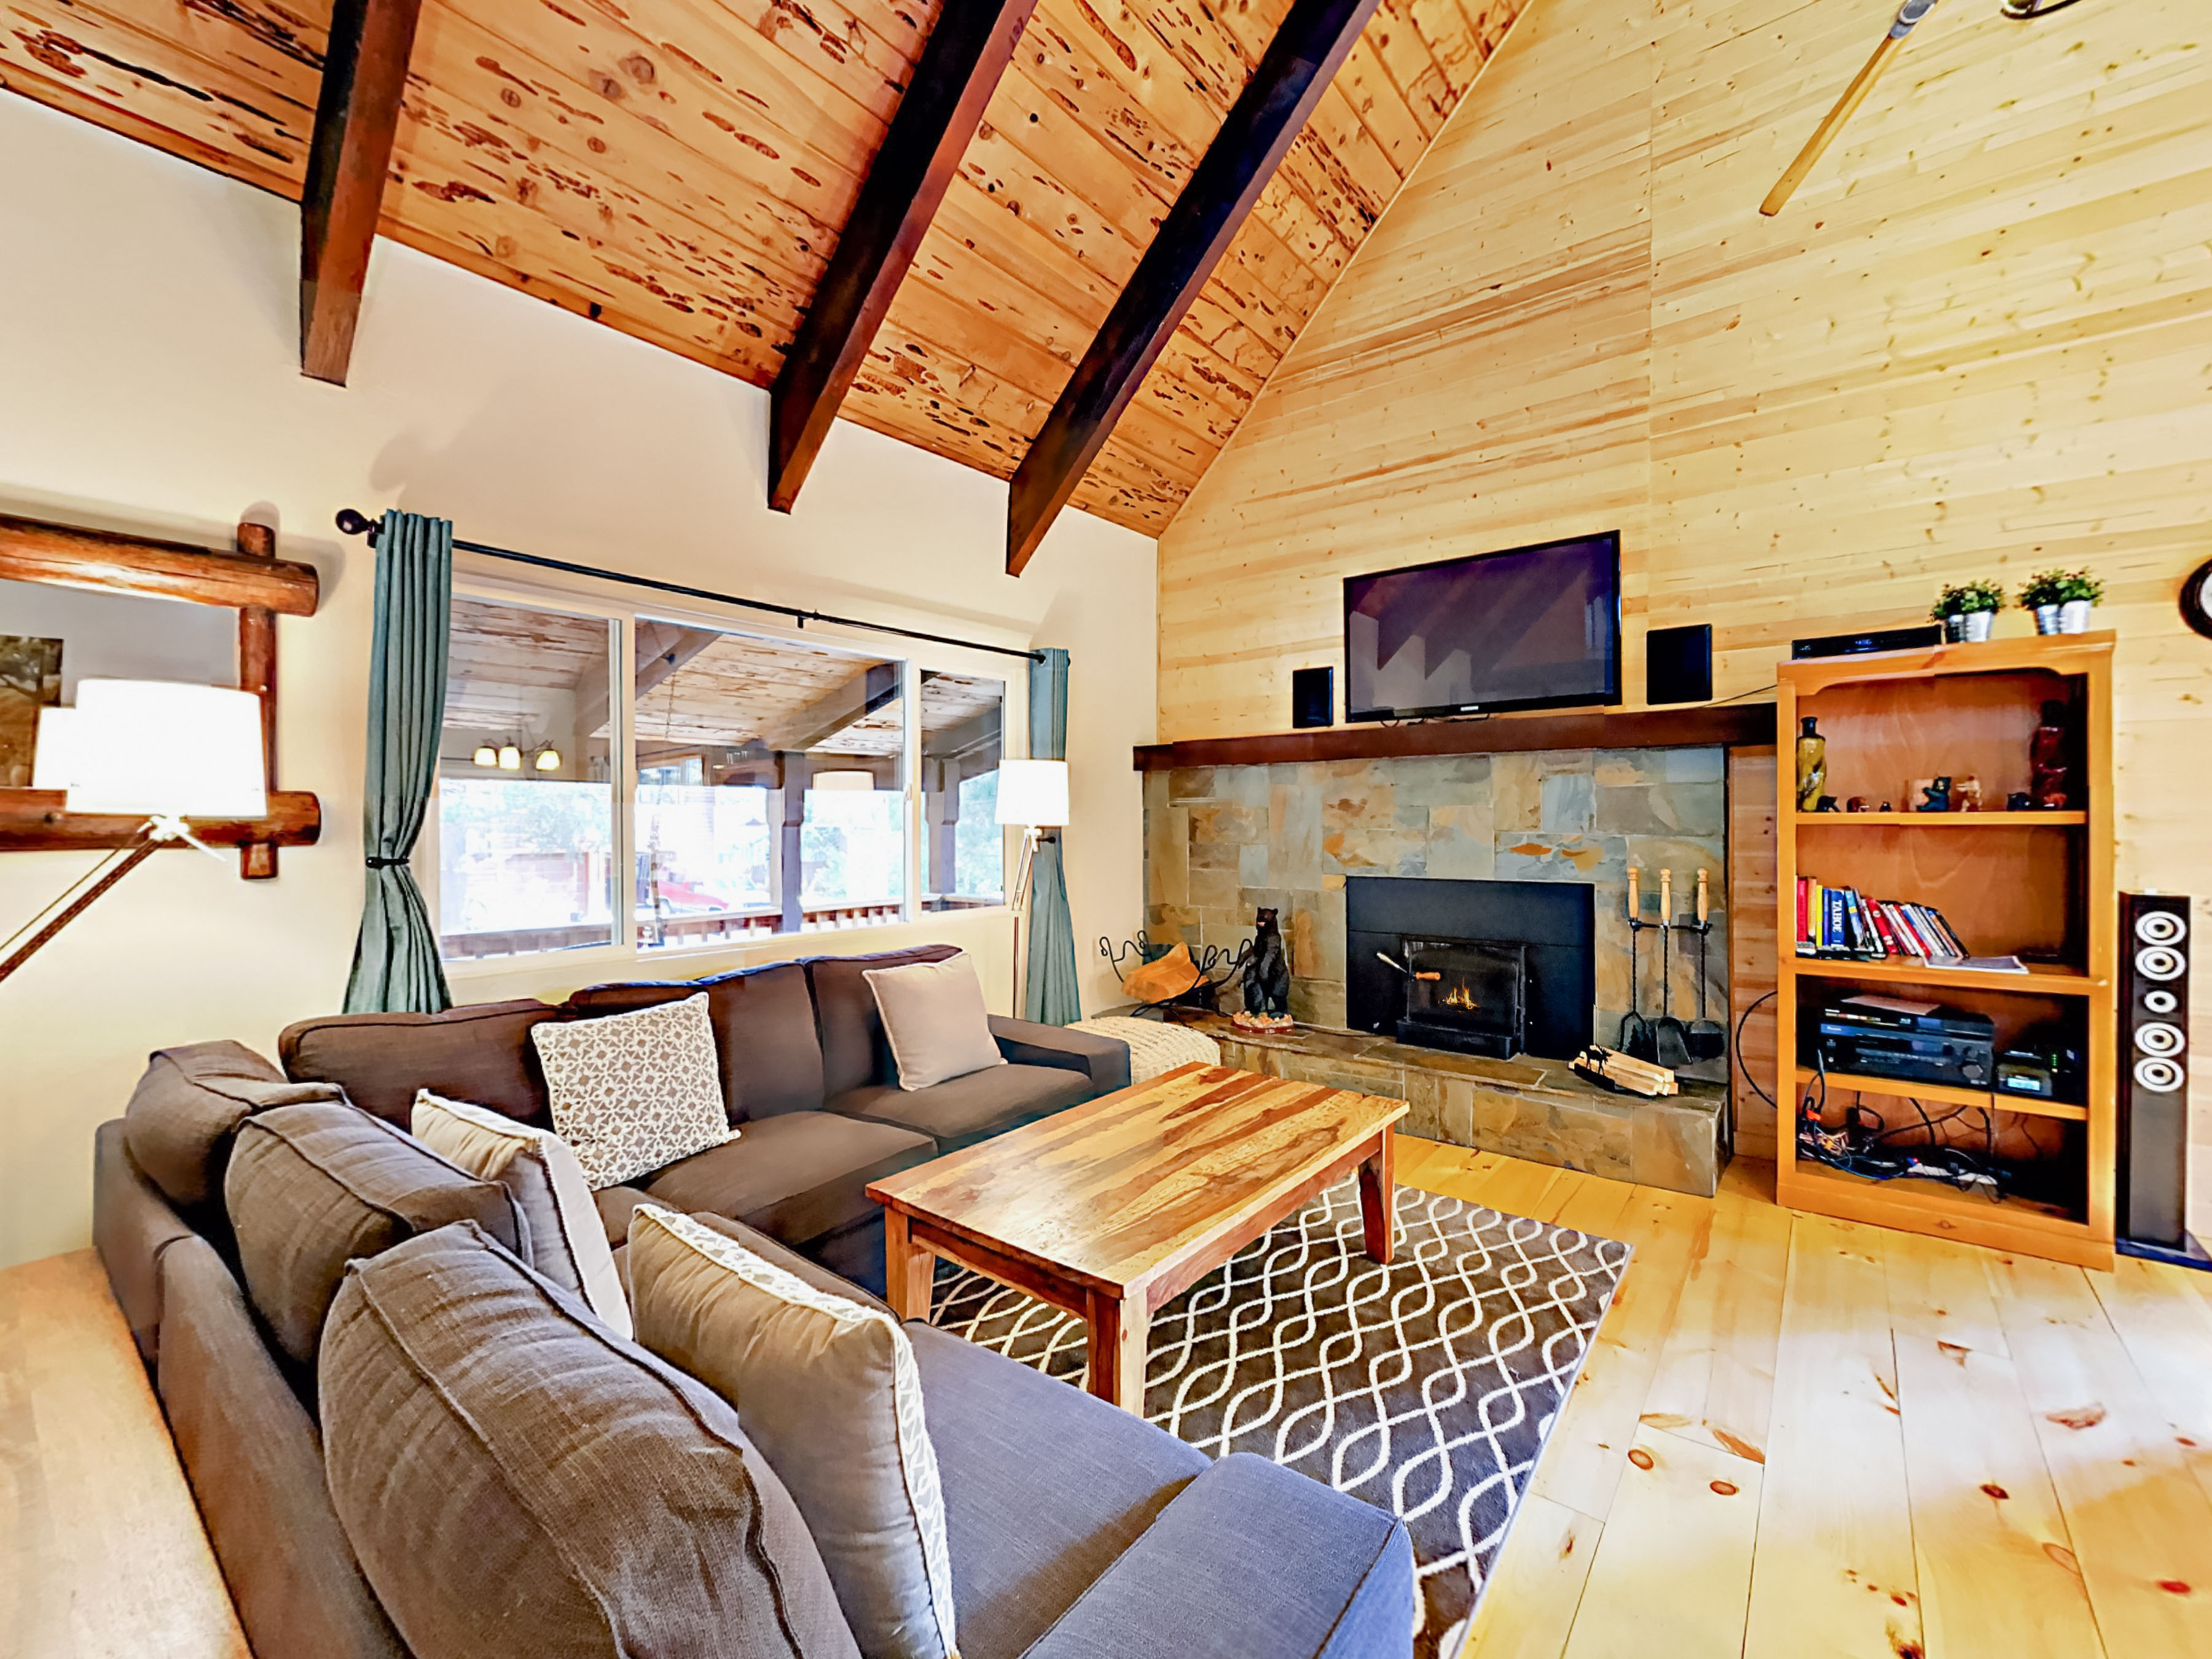 South Lake Tahoe CA Vacation Rental Seating faces a